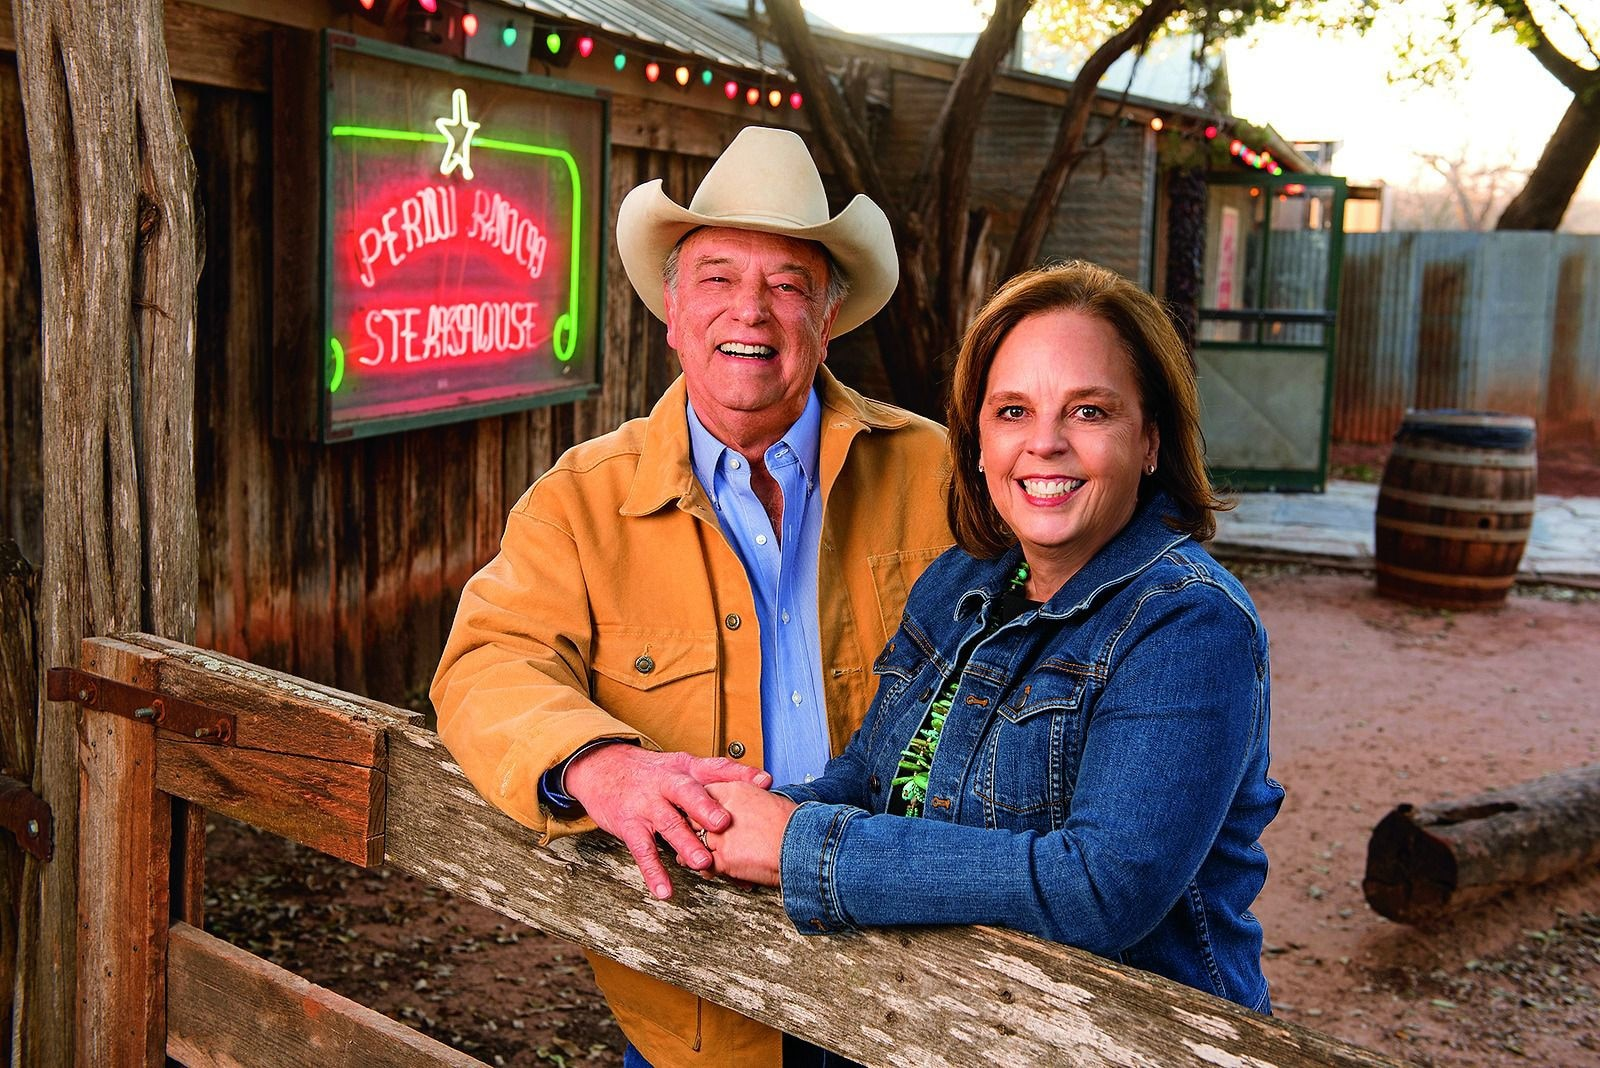 Tom and Lisa Perini of the Perini Ranch in Buffalo Gap are featured in the Neiman Marcus 2020 Christmas Book. A trip to the ranch and a year s supply of beef from a Black Angus steer is one of the fantasy gifts and costs $185,000. The trip will include time with Perini, known as the Cowboy Gourmet. His Perini Ranch Steakhouse has received the James Beard Award.